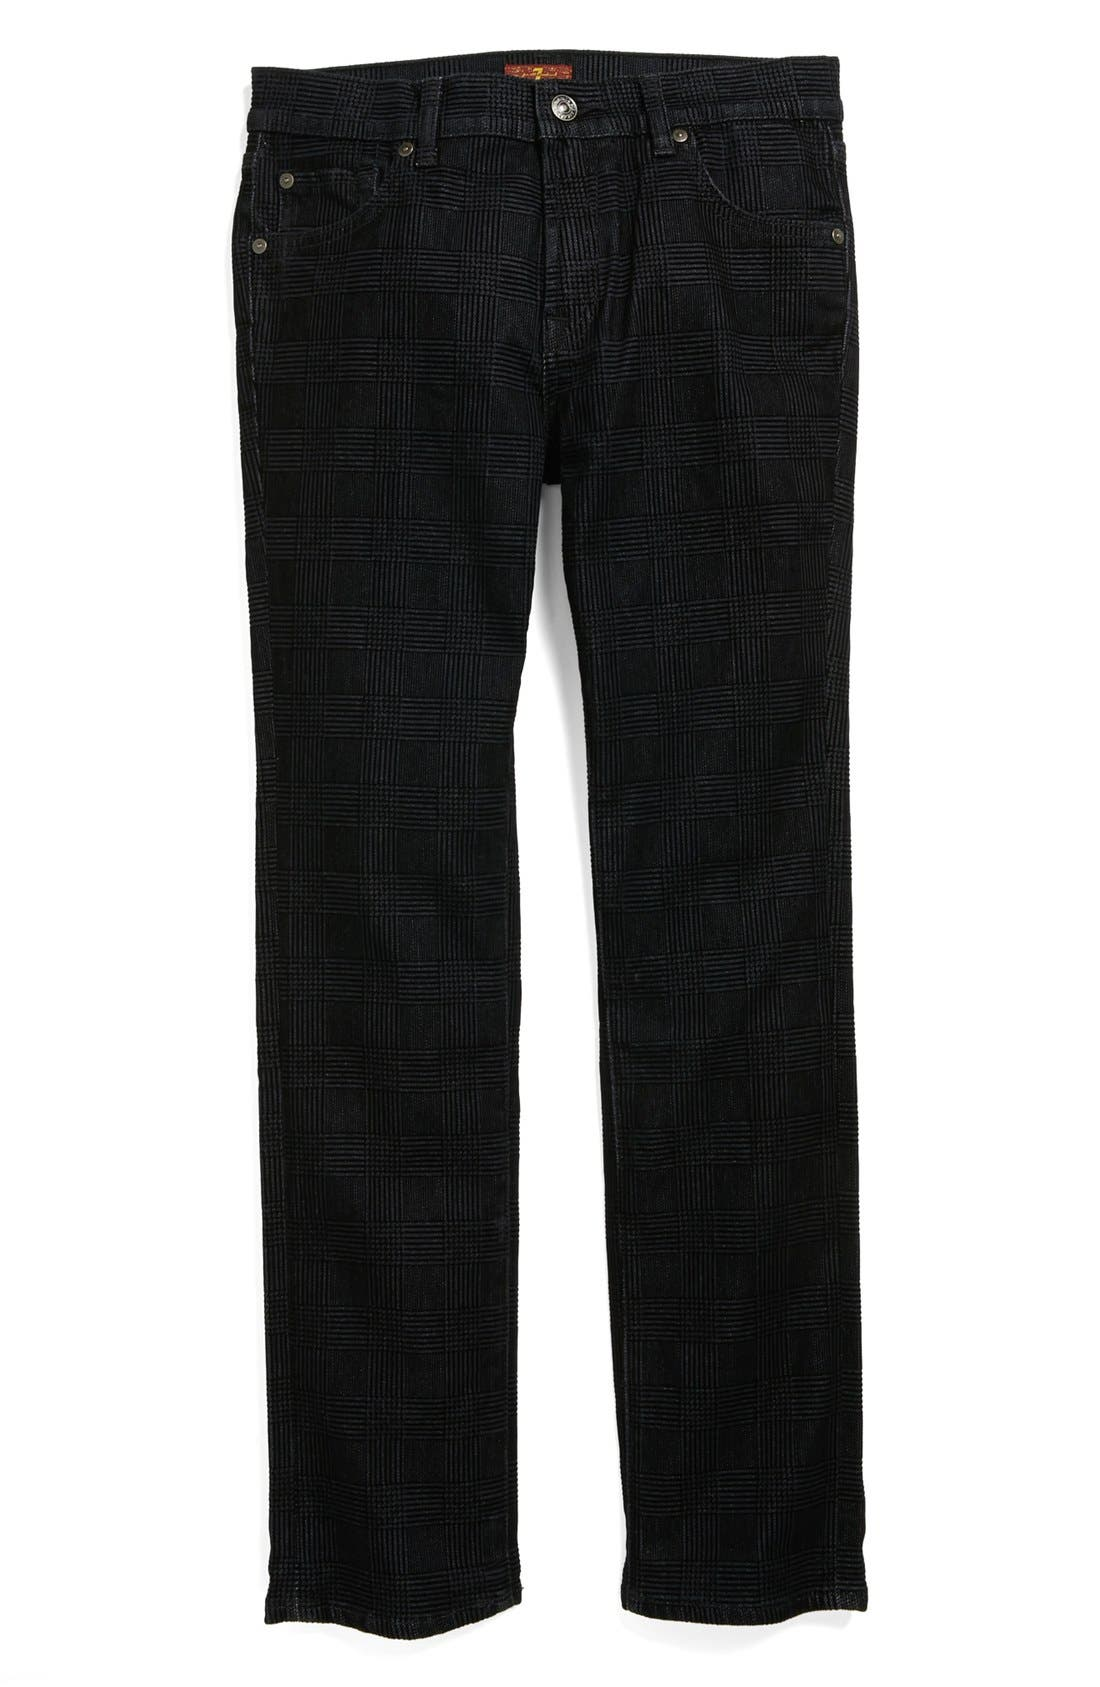 Main Image - 7 For All Mankind® 'Slimmy' Straight Leg Jeans (Big Boys)